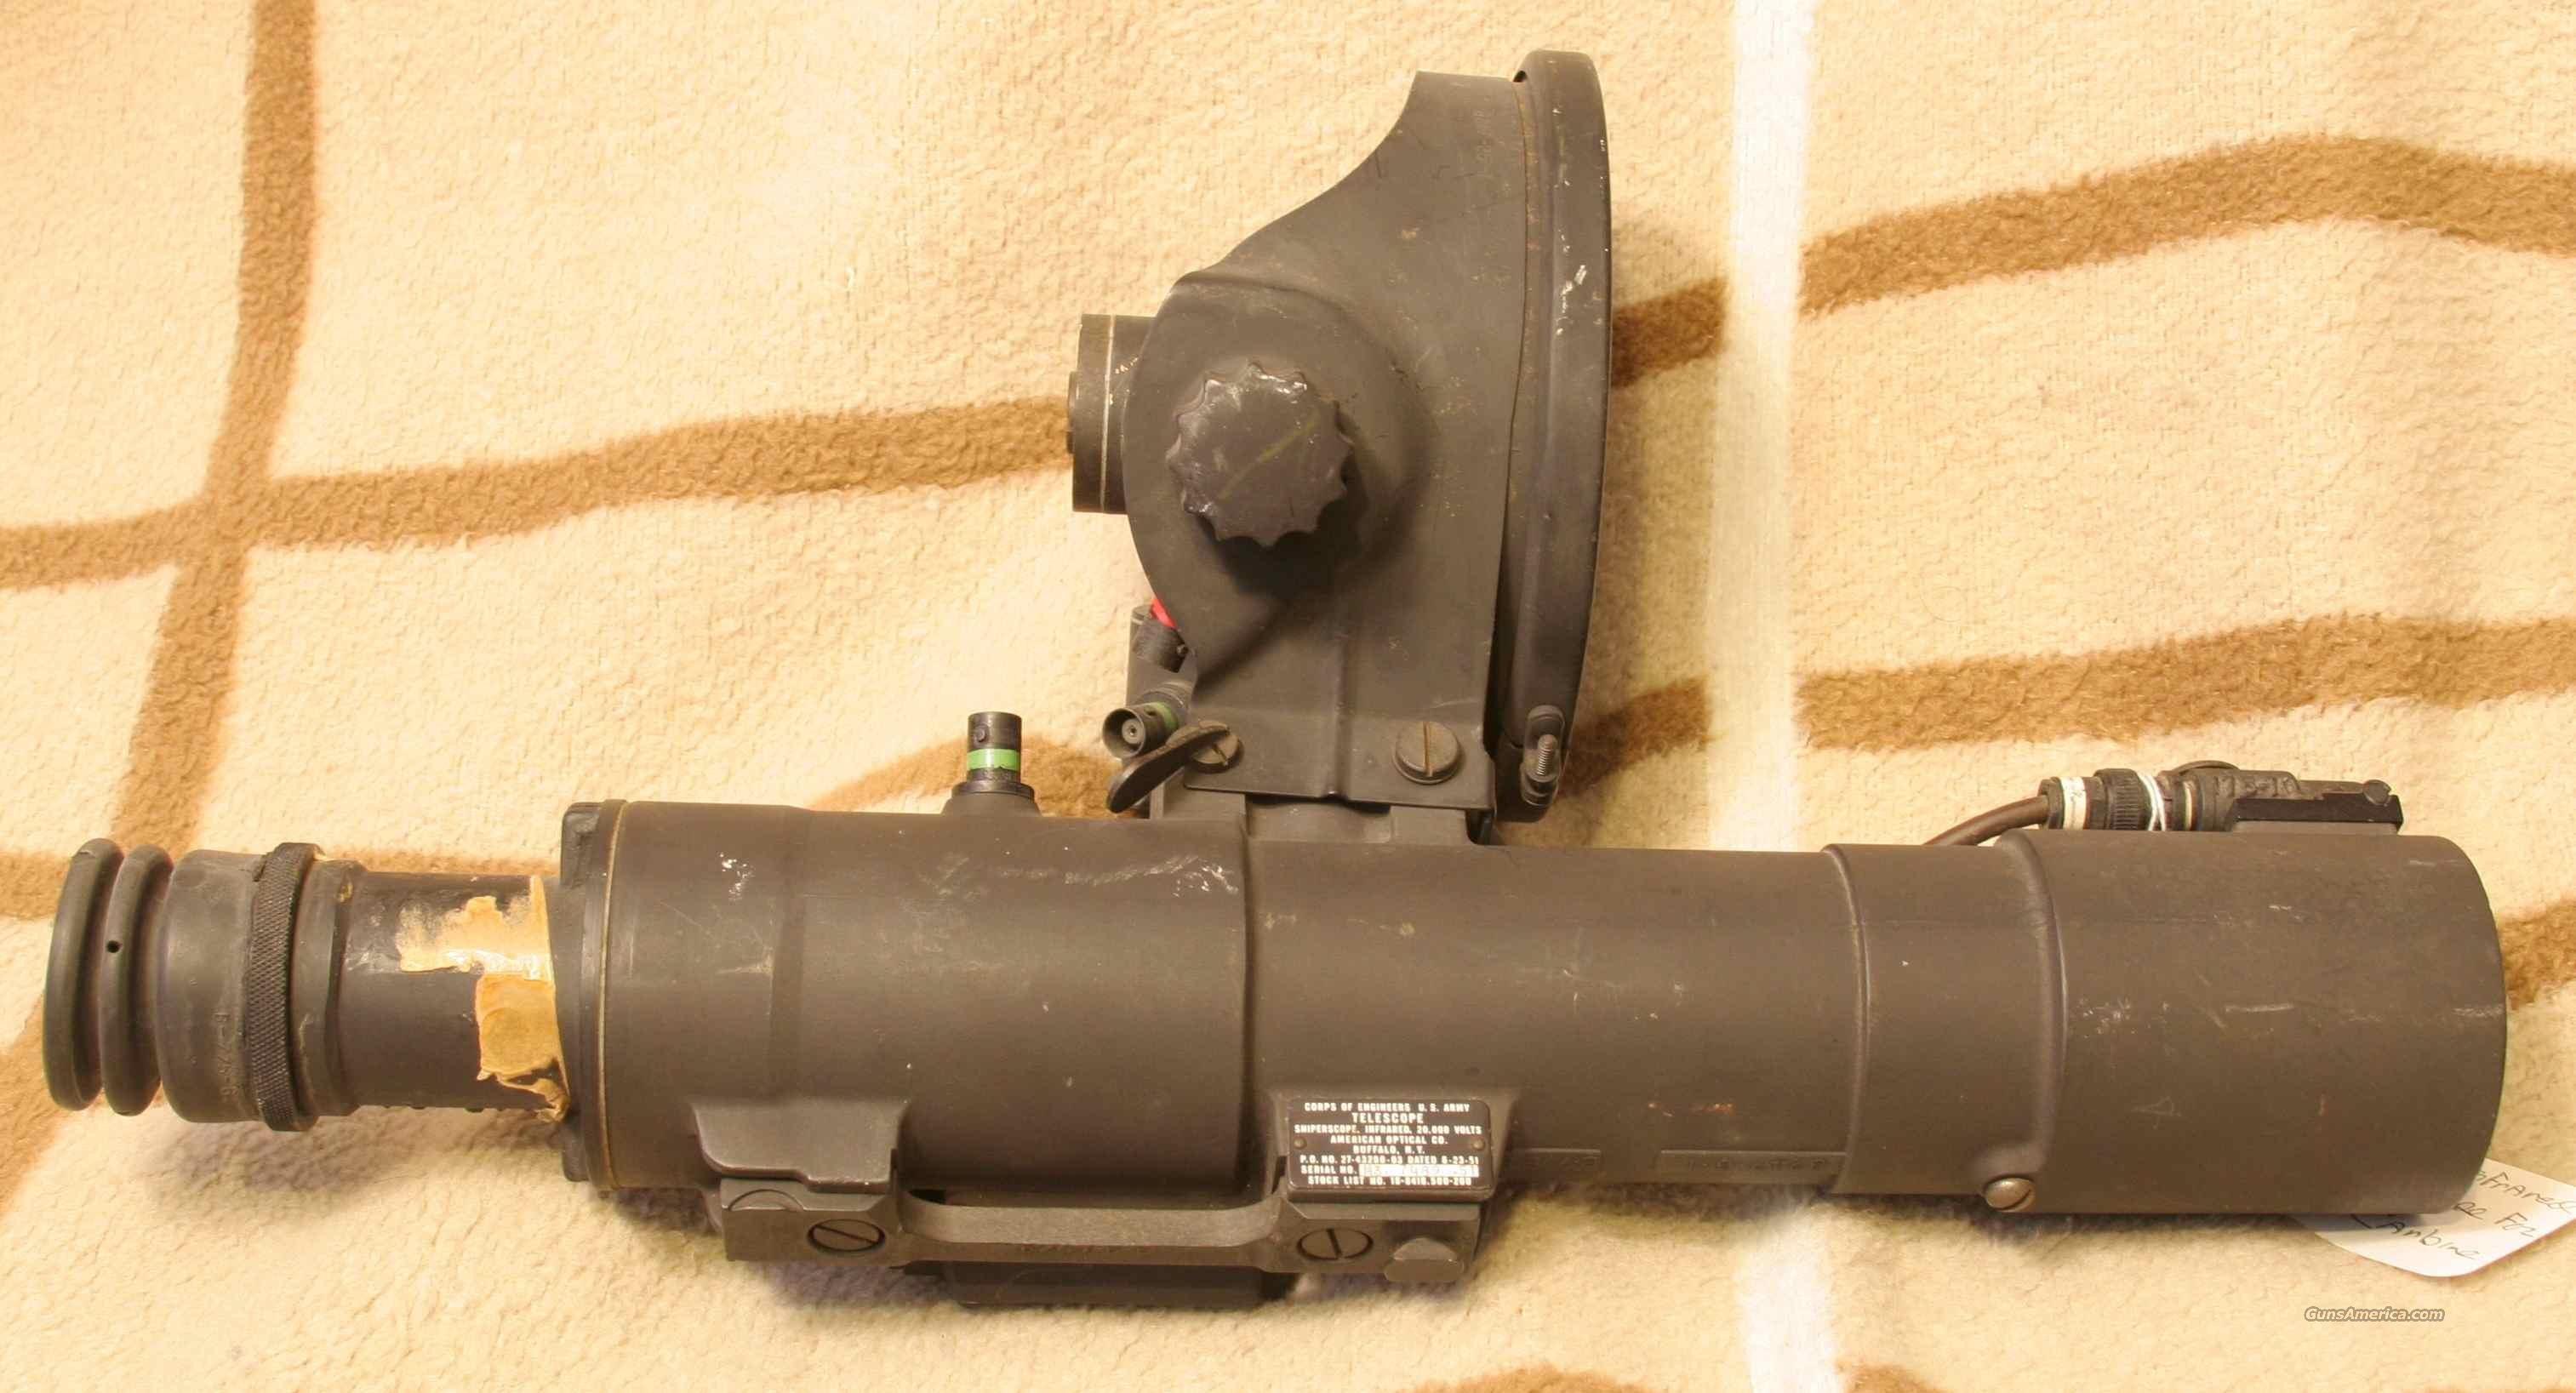 M3 Infrared Sniper Scope For M1 Carbine For Sale